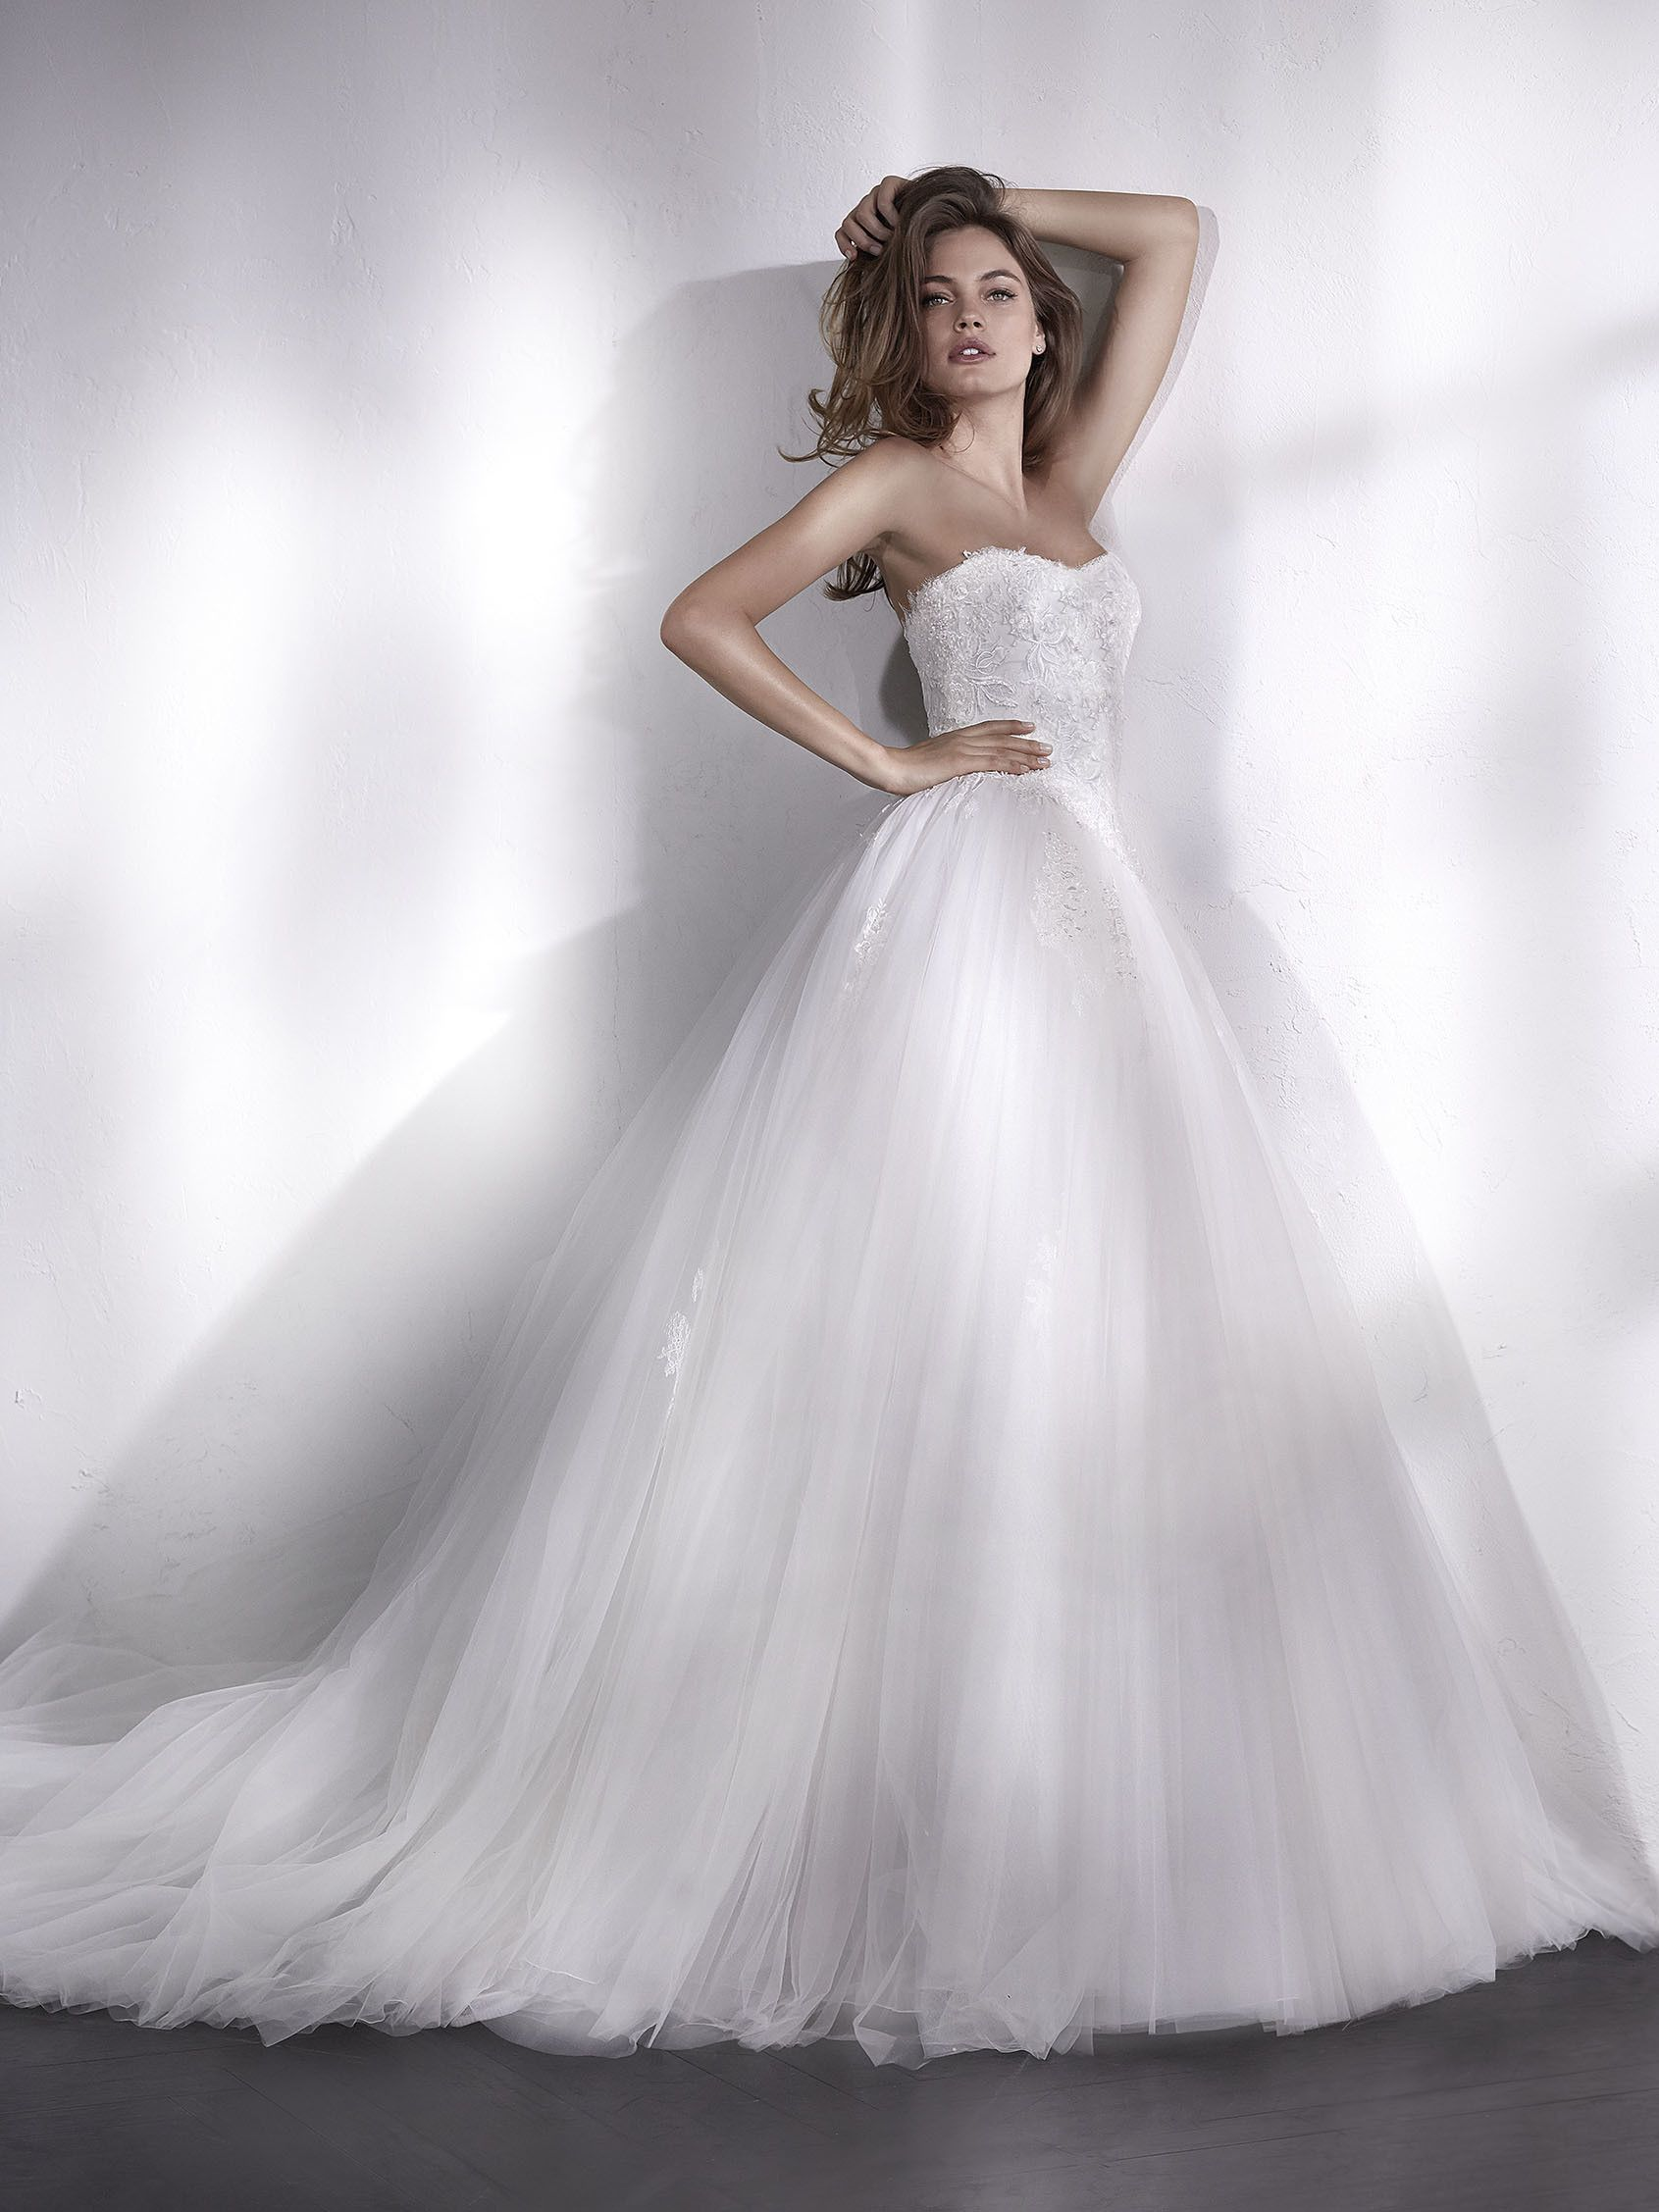 St patrick bridal collection liesen very romantic cinderella